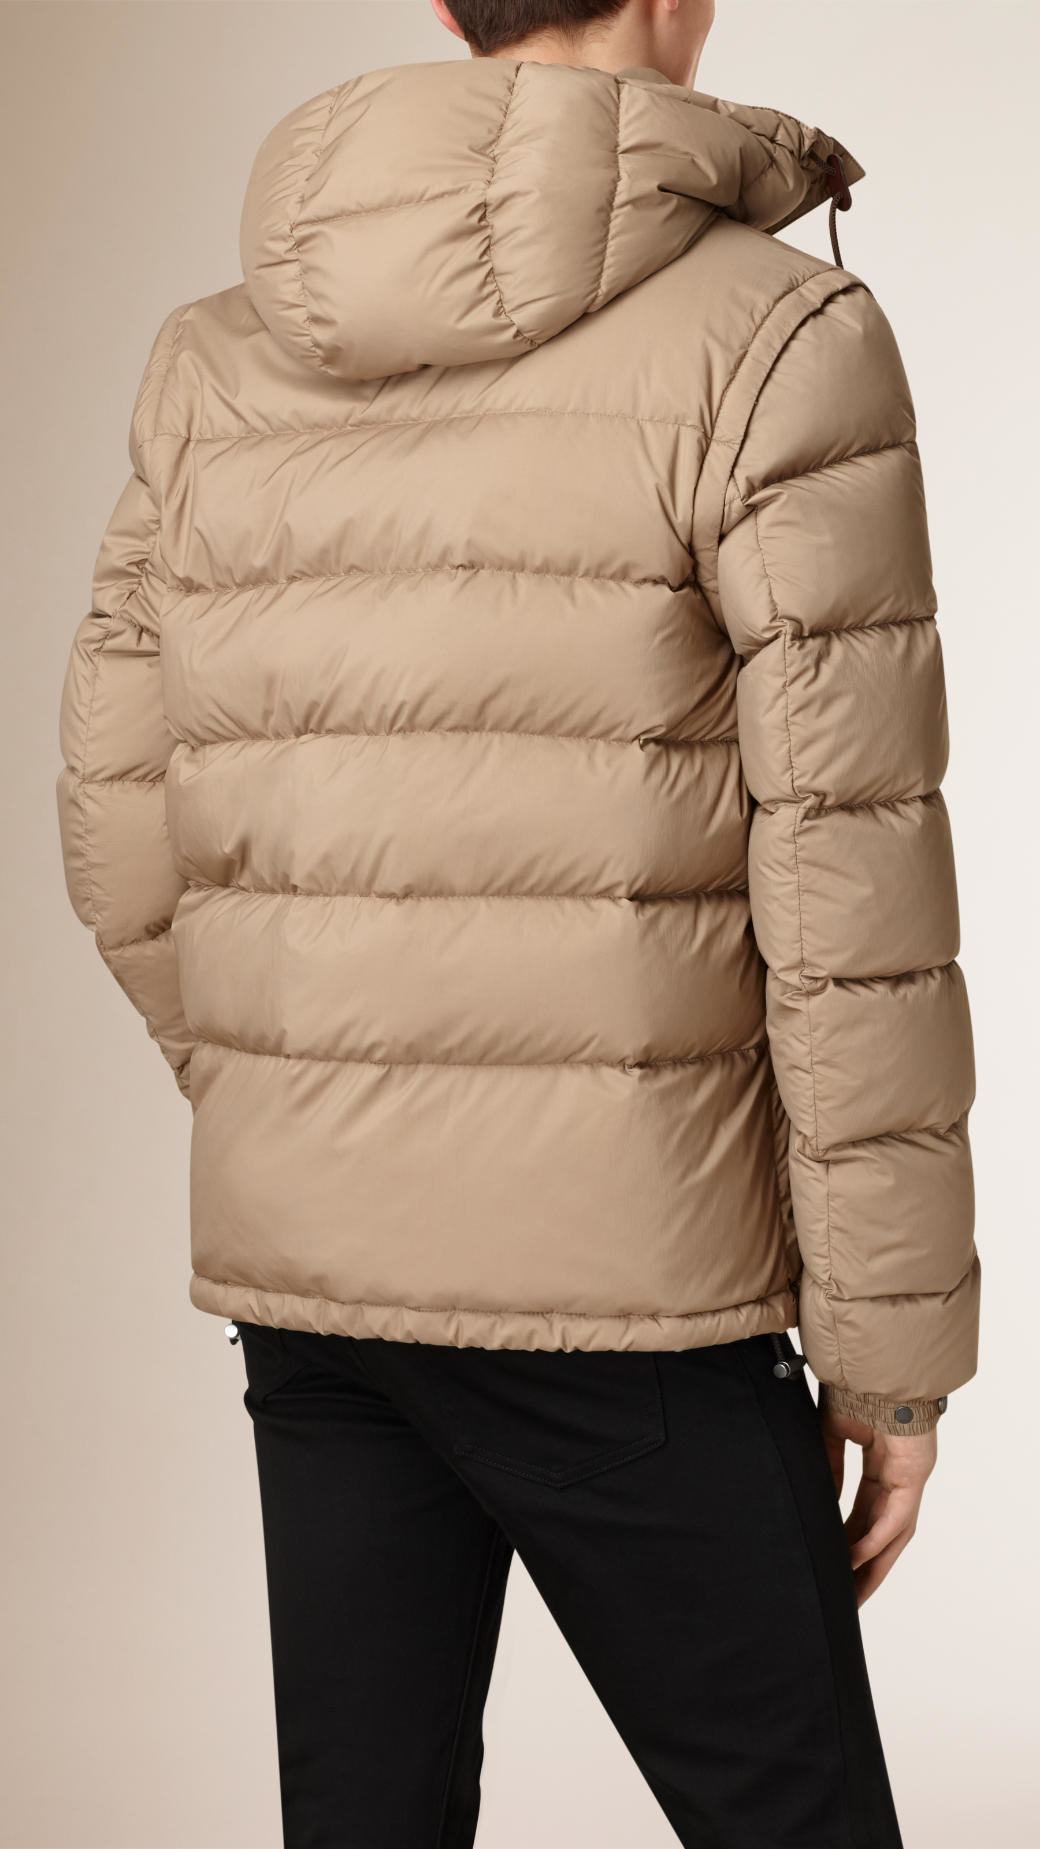 Lyst Burberry Puffer Jacket With Removable Sleeves Taupe